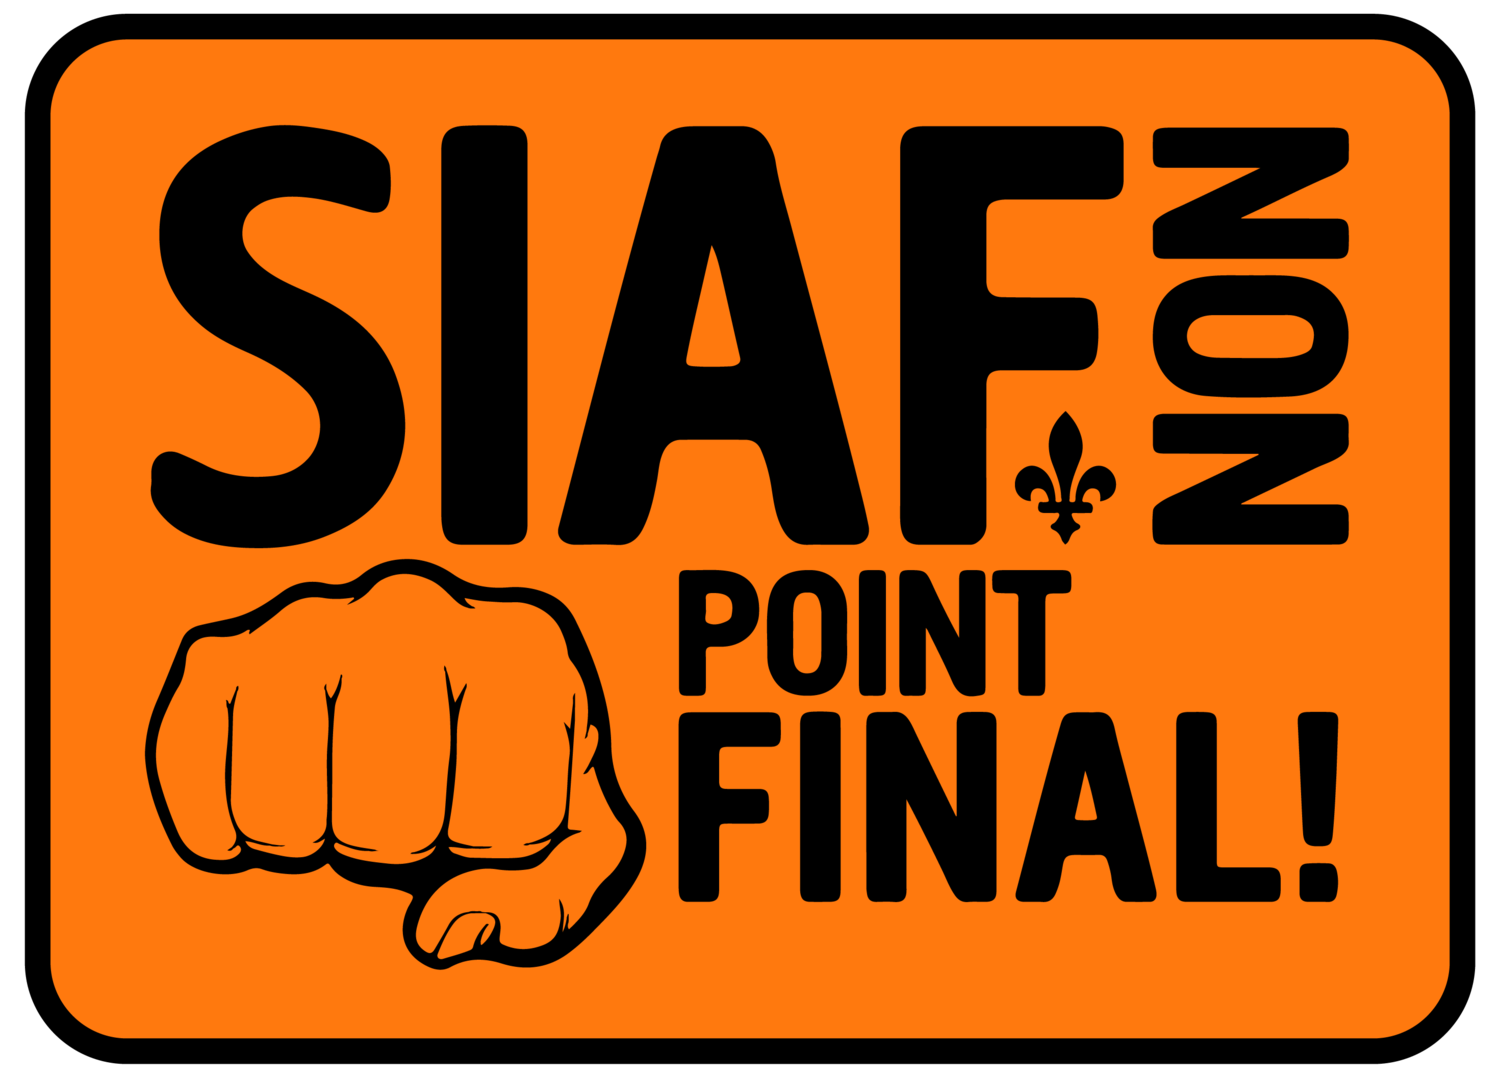 Autocollant - Point final !